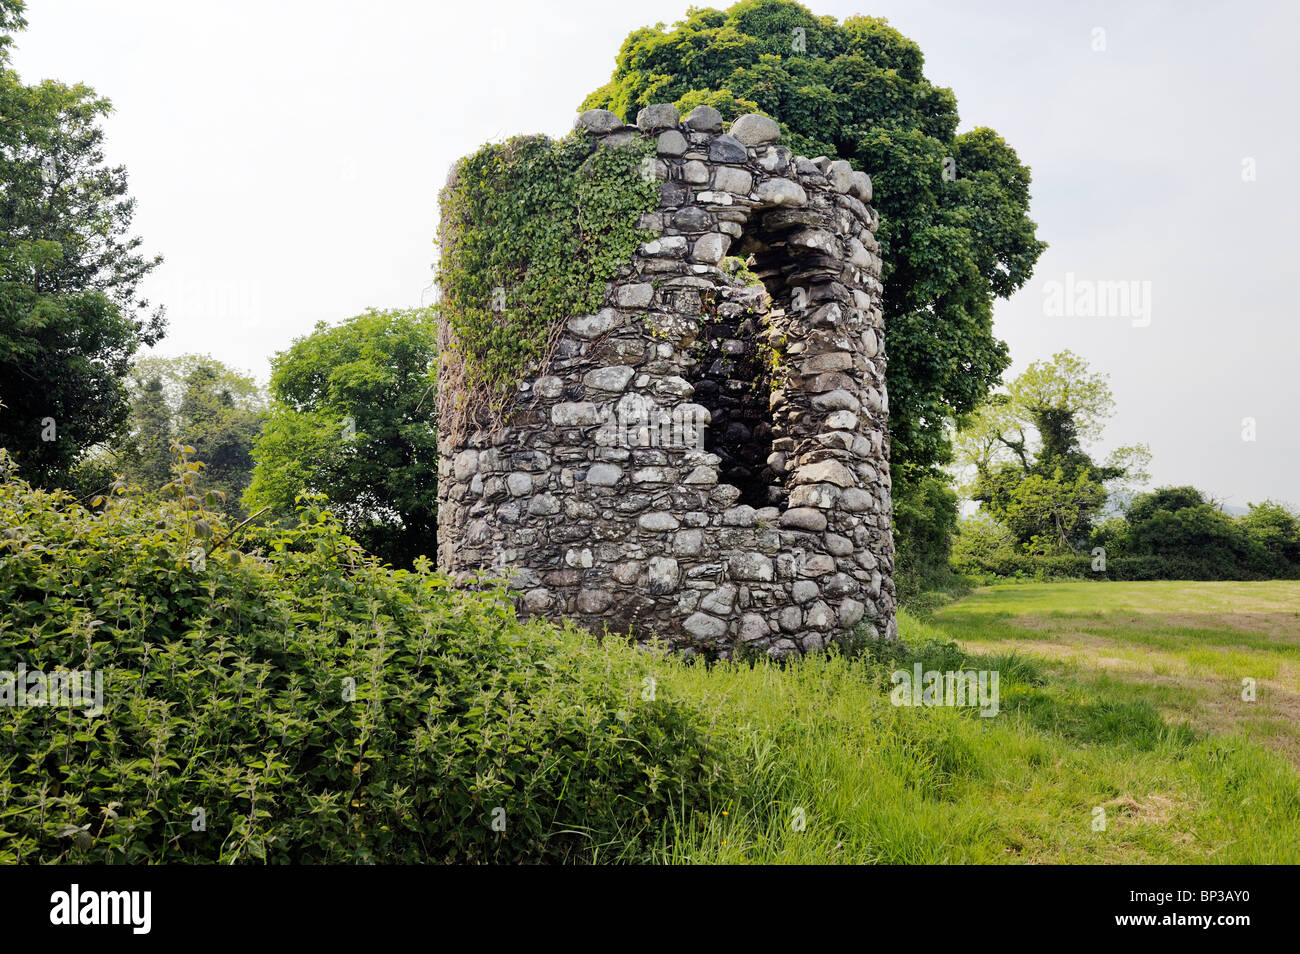 Ruined mediaeval Celtic Christian round tower at Maghera Old Church of St. Donairt. Castlewellan, County Down, Northern - Stock Image